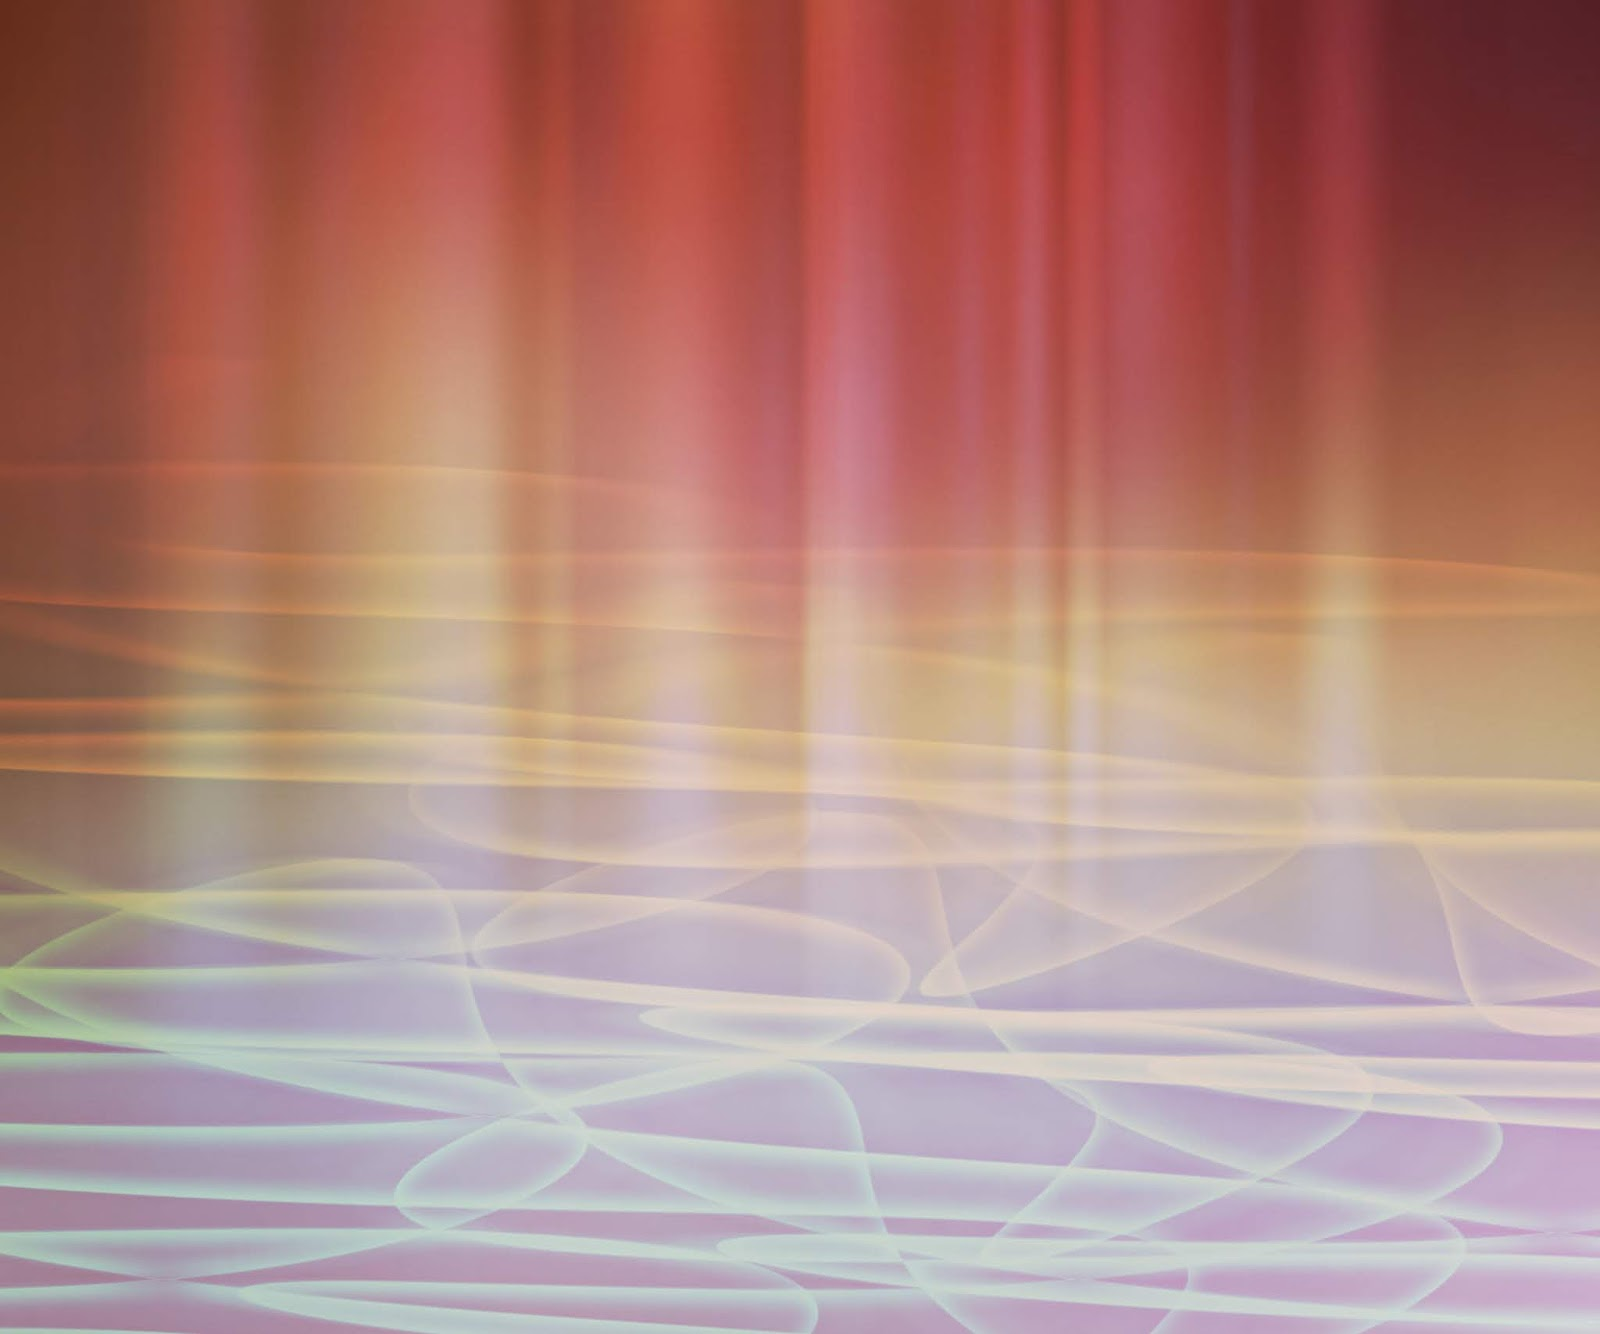 HD abstract background